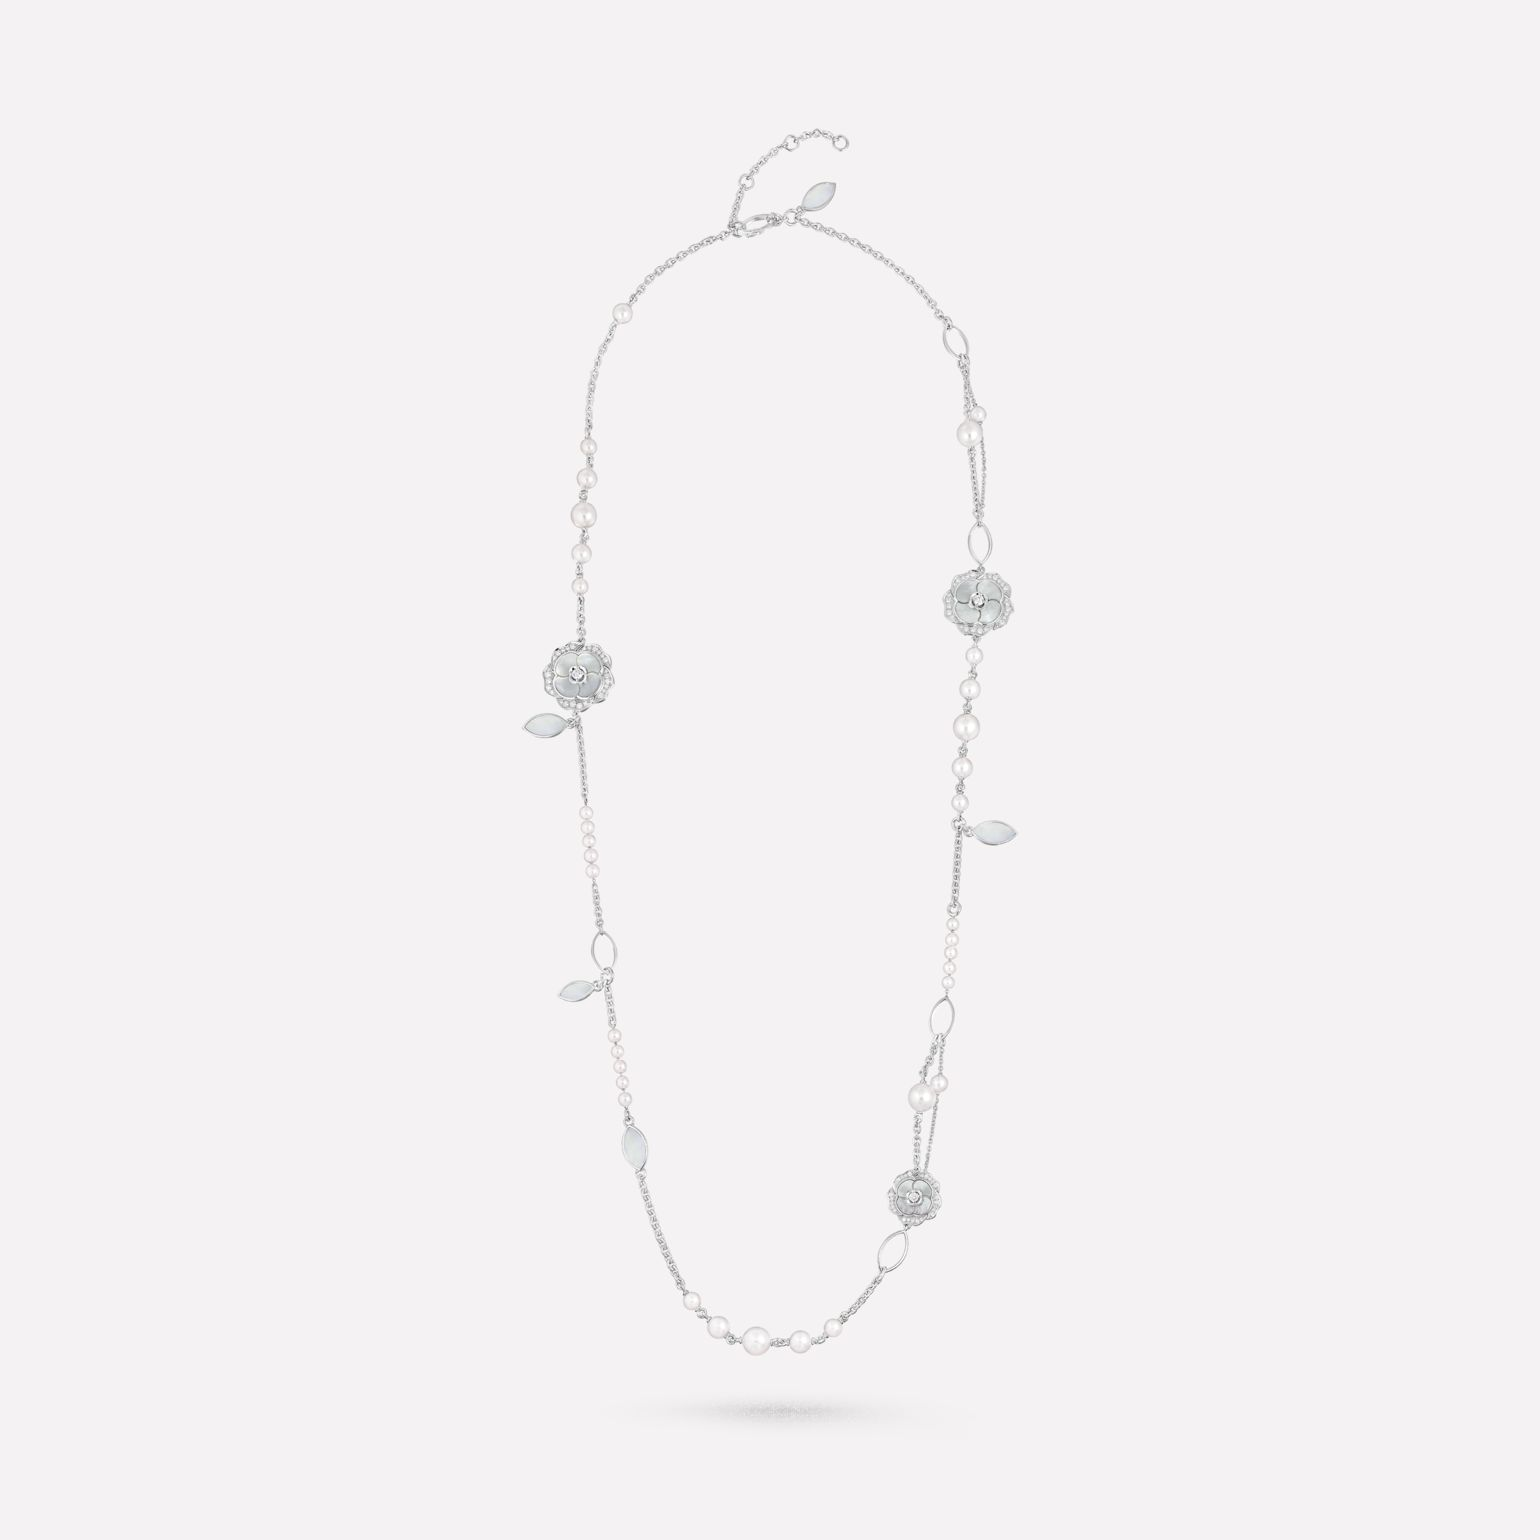 Camélia necklace Pétales de Camélia necklace, in 18K white gold, diamonds, cultured pearls and mother-of-pearl